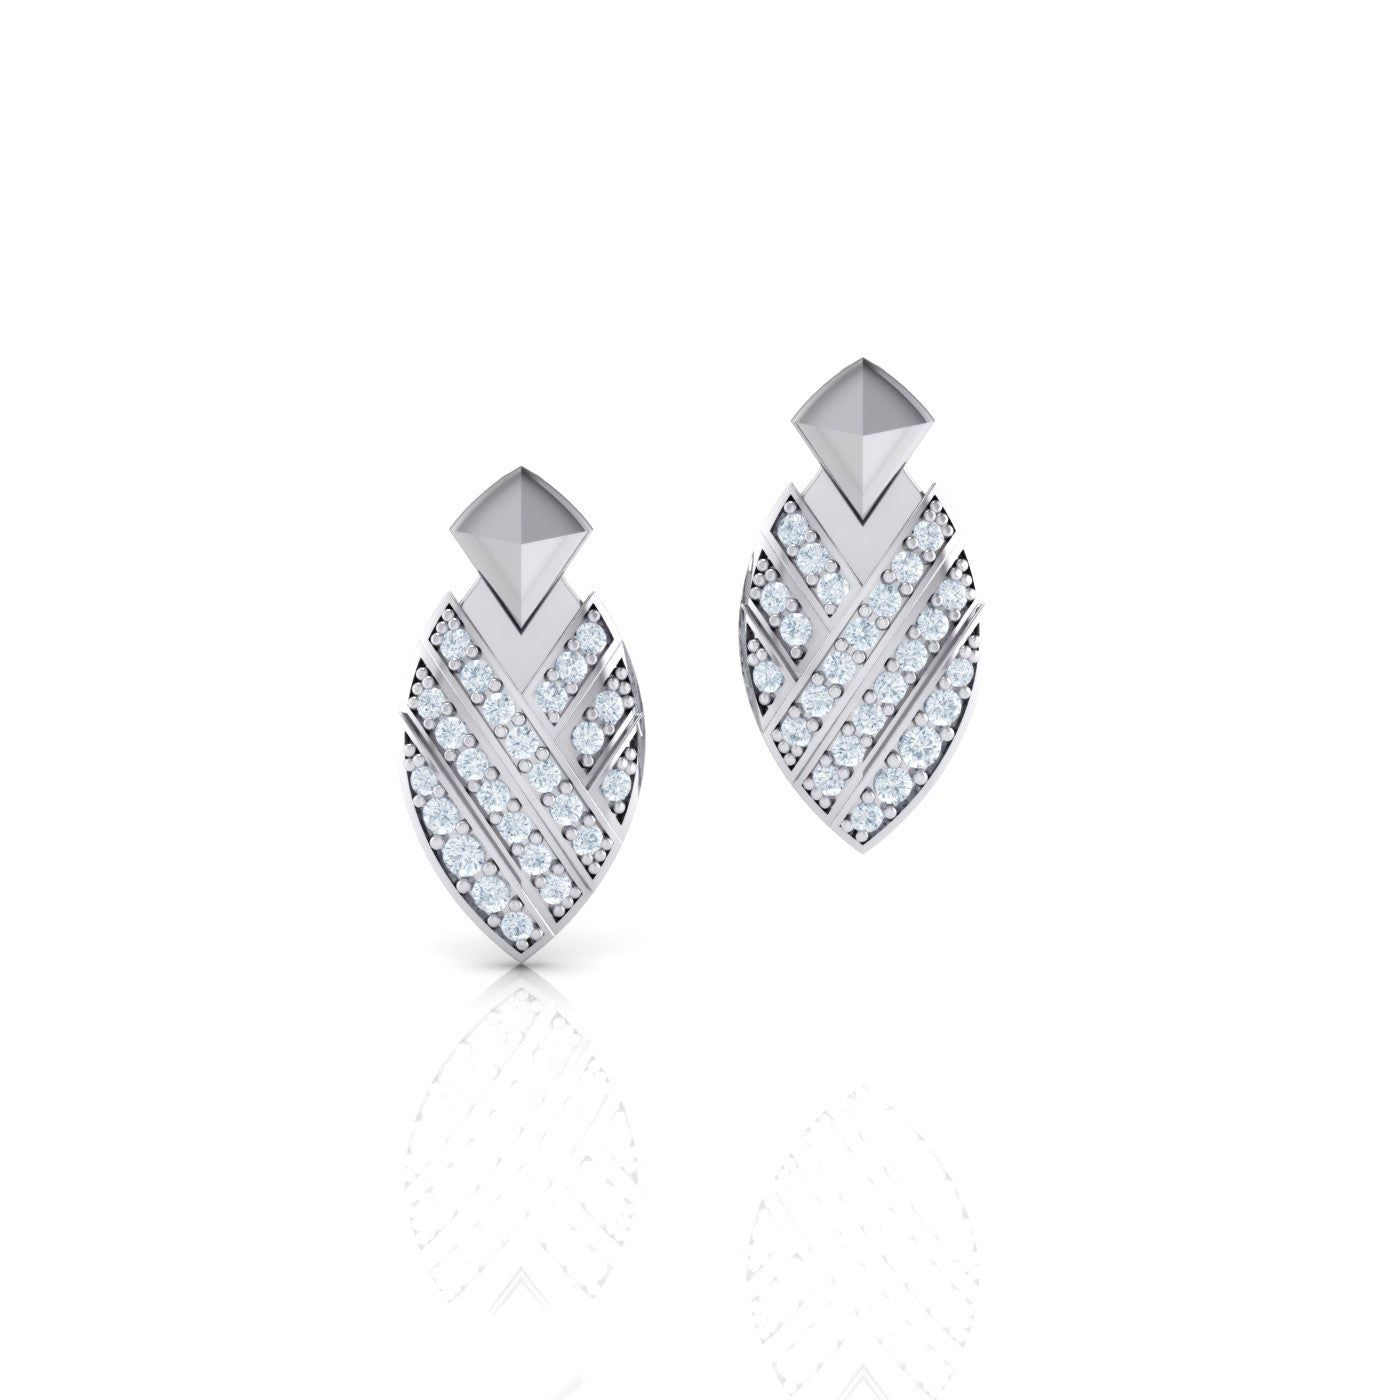 Diamond Earrings in 18kt White Gold